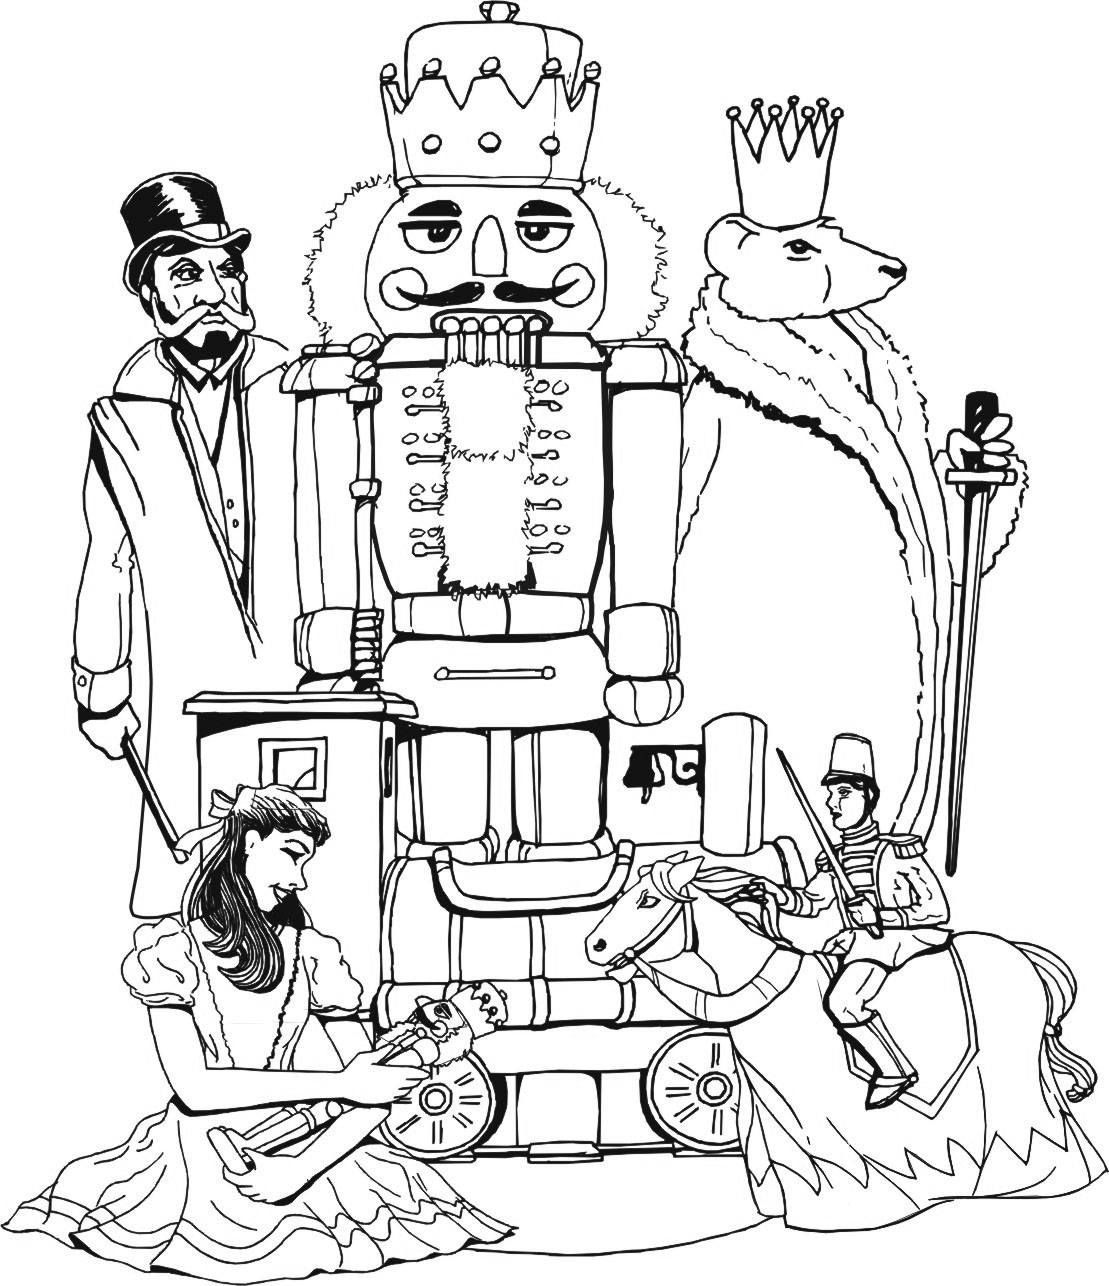 nutcracker coloring page nutcracker coloring page free printable coloring pages nutcracker coloring page